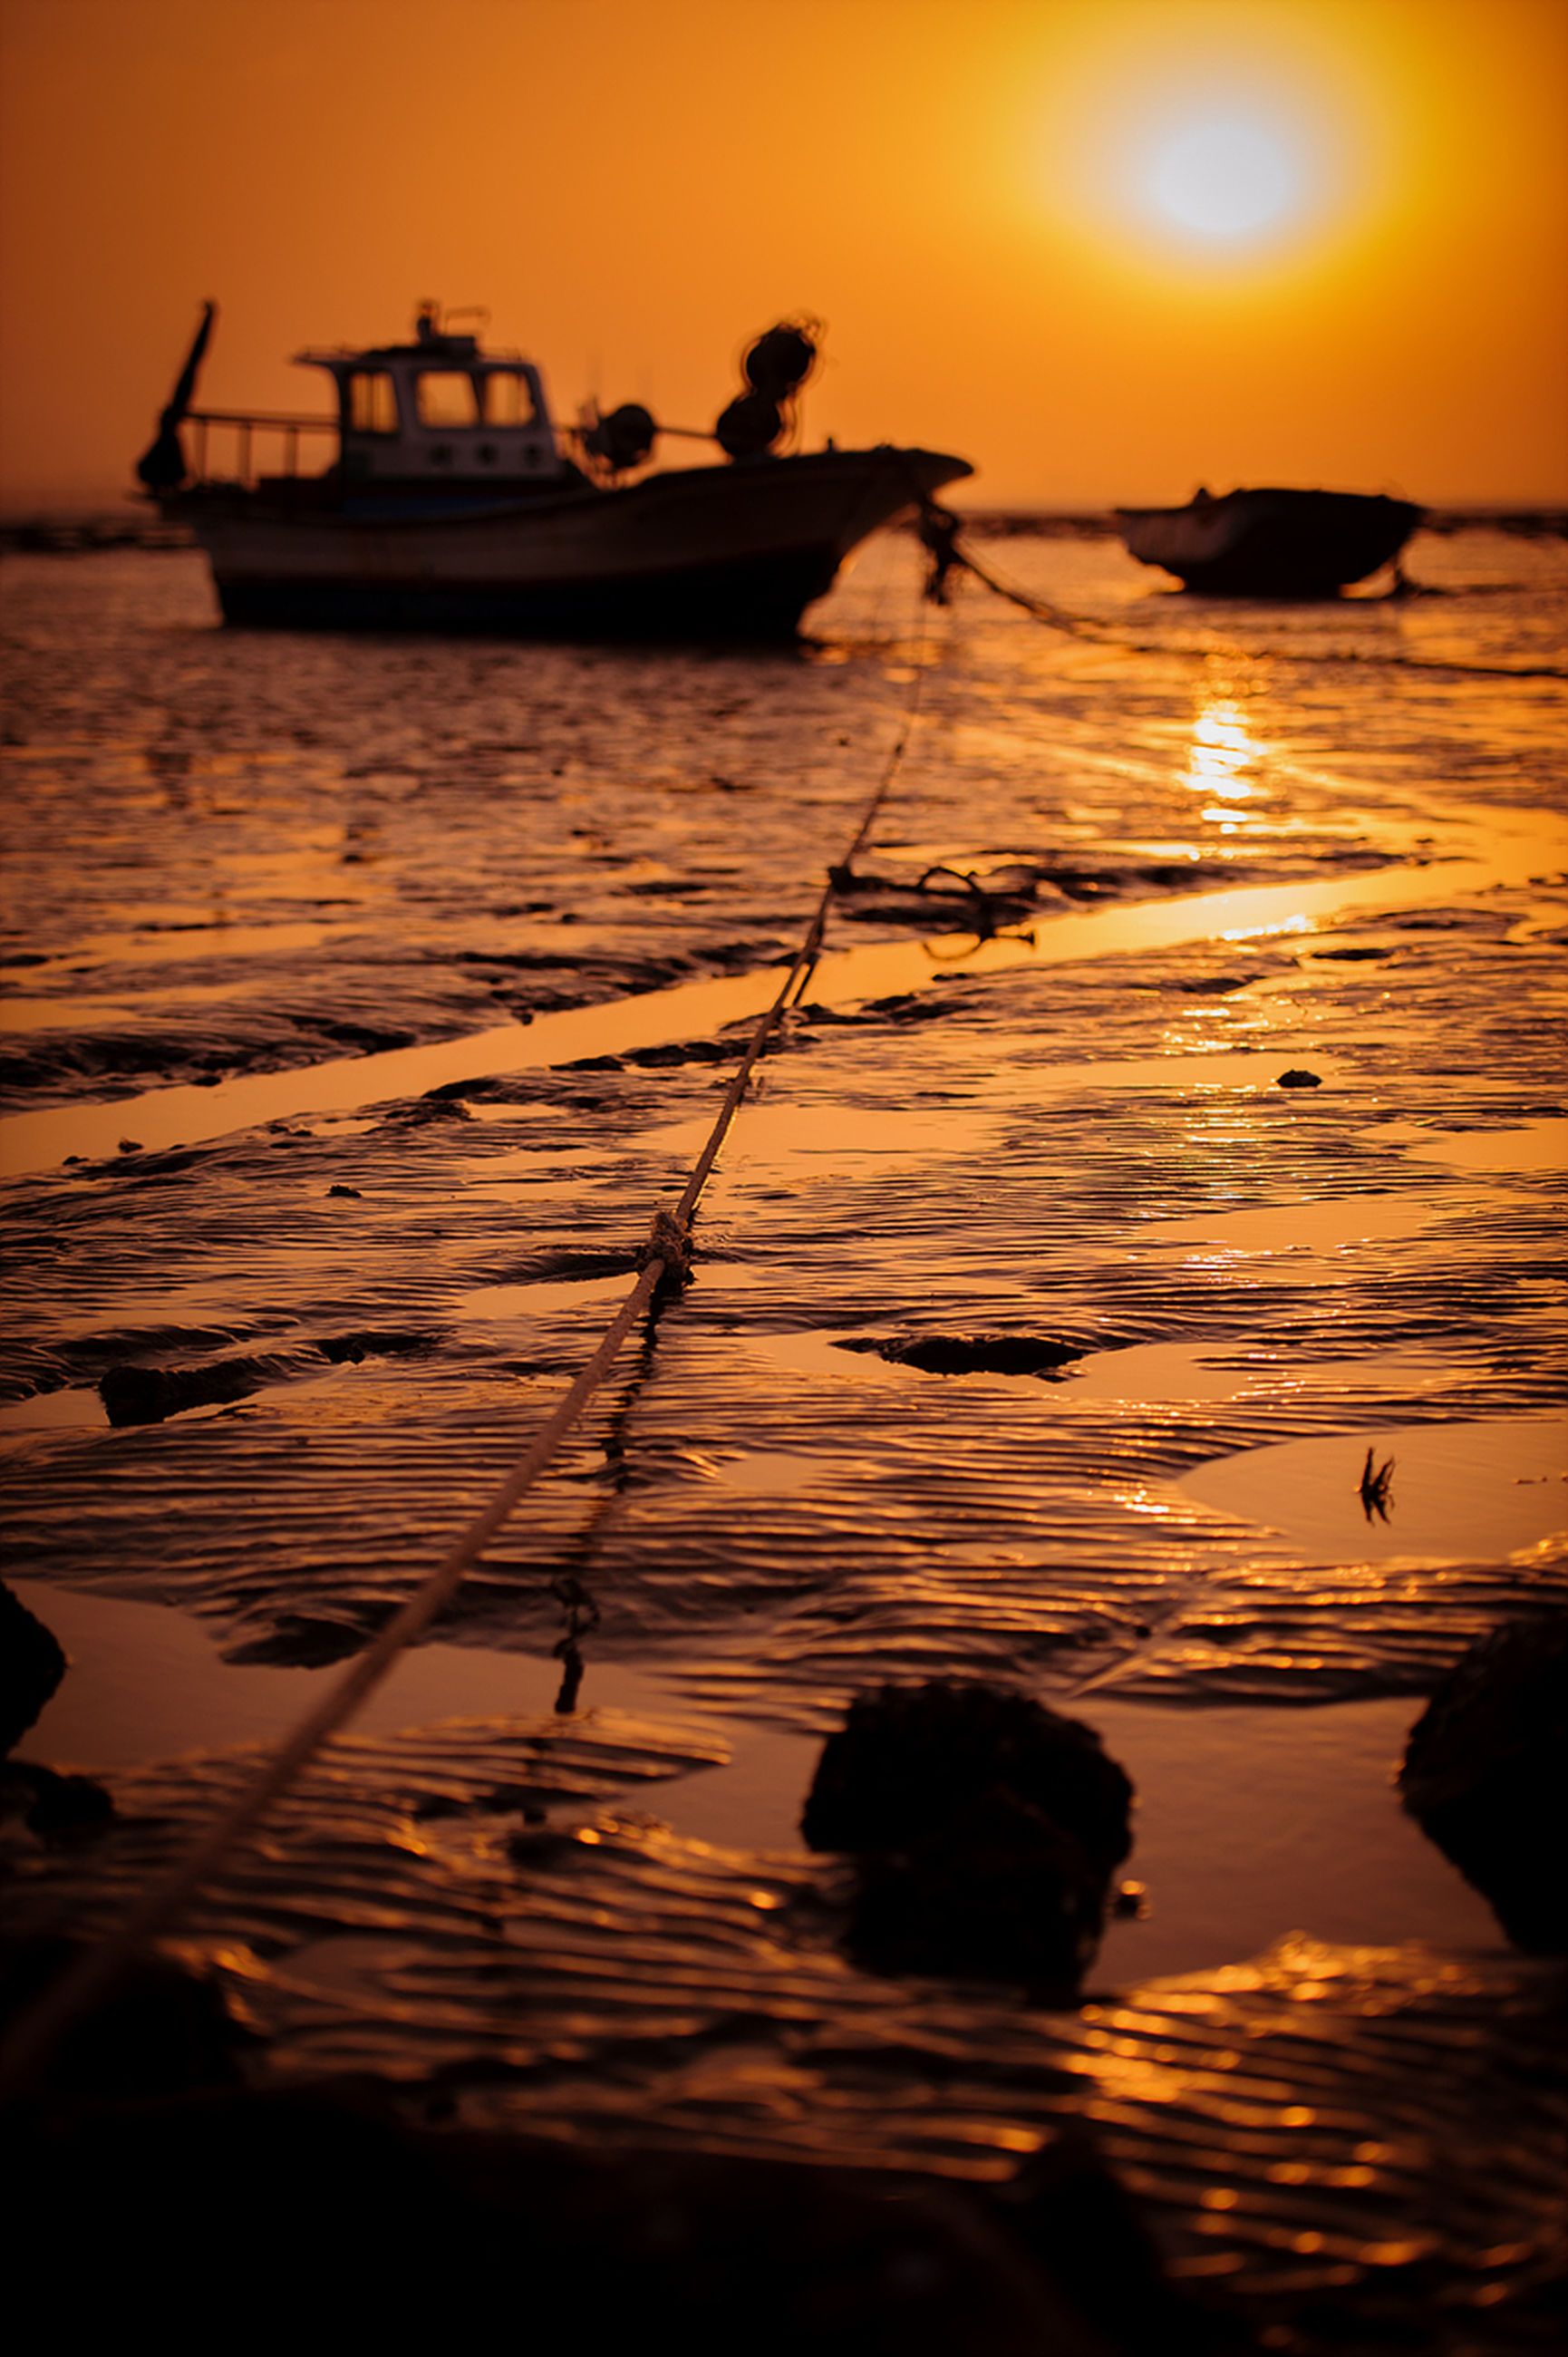 sunset, water, sea, silhouette, orange color, sun, reflection, scenics, horizon over water, nautical vessel, tranquil scene, beauty in nature, tranquility, boat, sky, idyllic, transportation, nature, beach, mode of transport